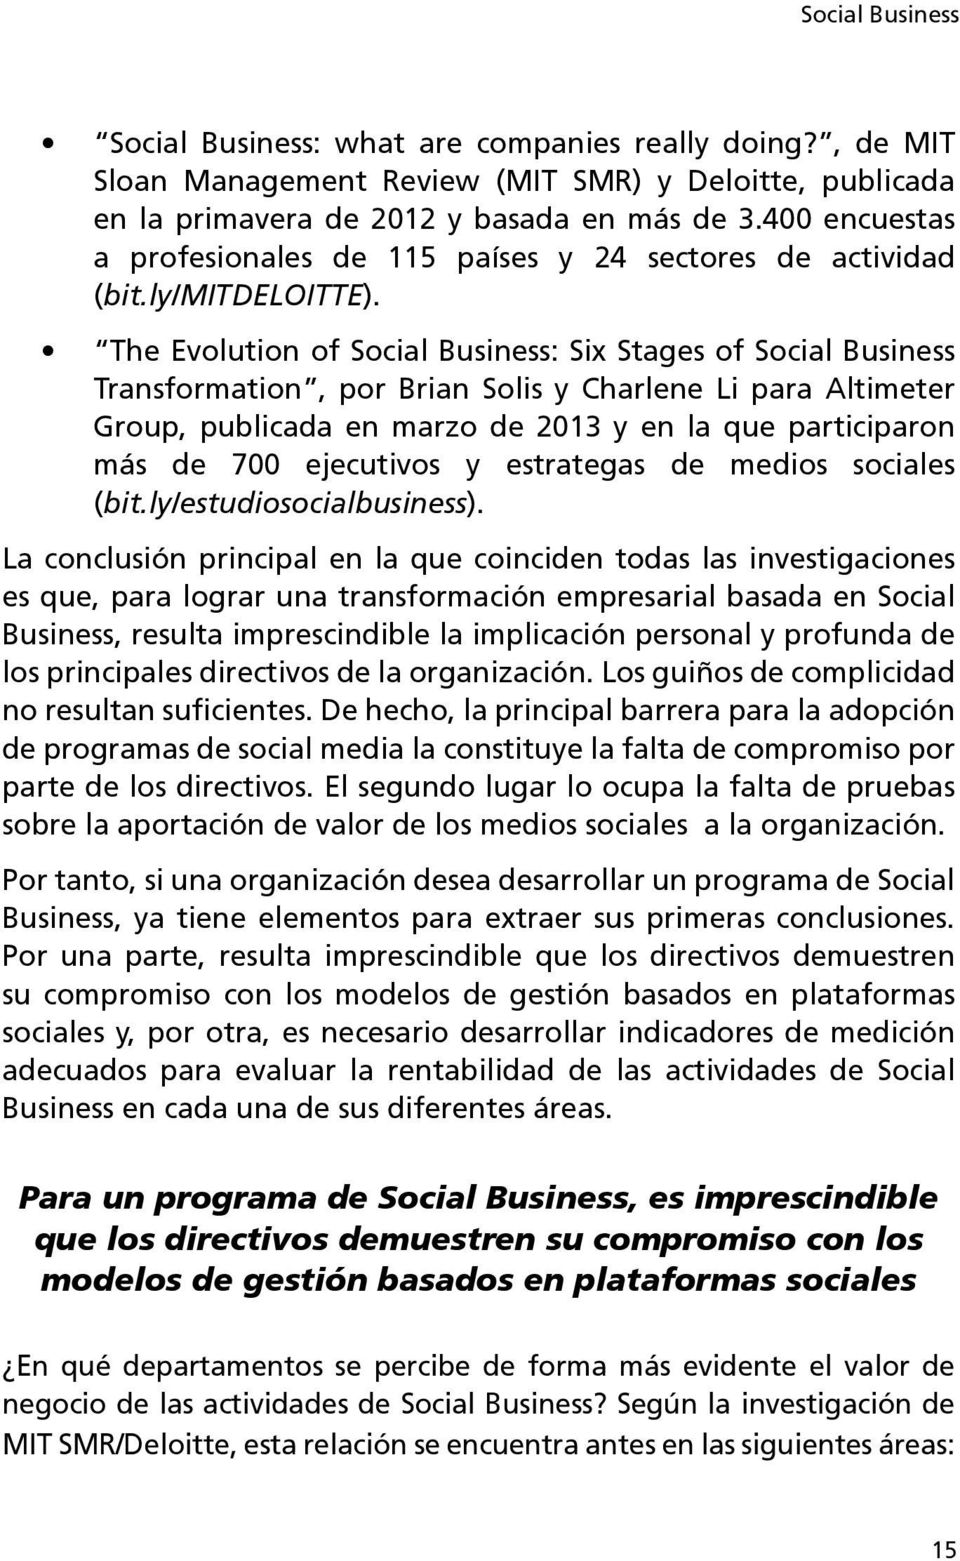 The Evolution of Social Business: Six Stages of Social Business Transformation, por Brian Solis y Charlene Li para Altimeter Group, publicada en marzo de 2013 y en la que participaron más de 700